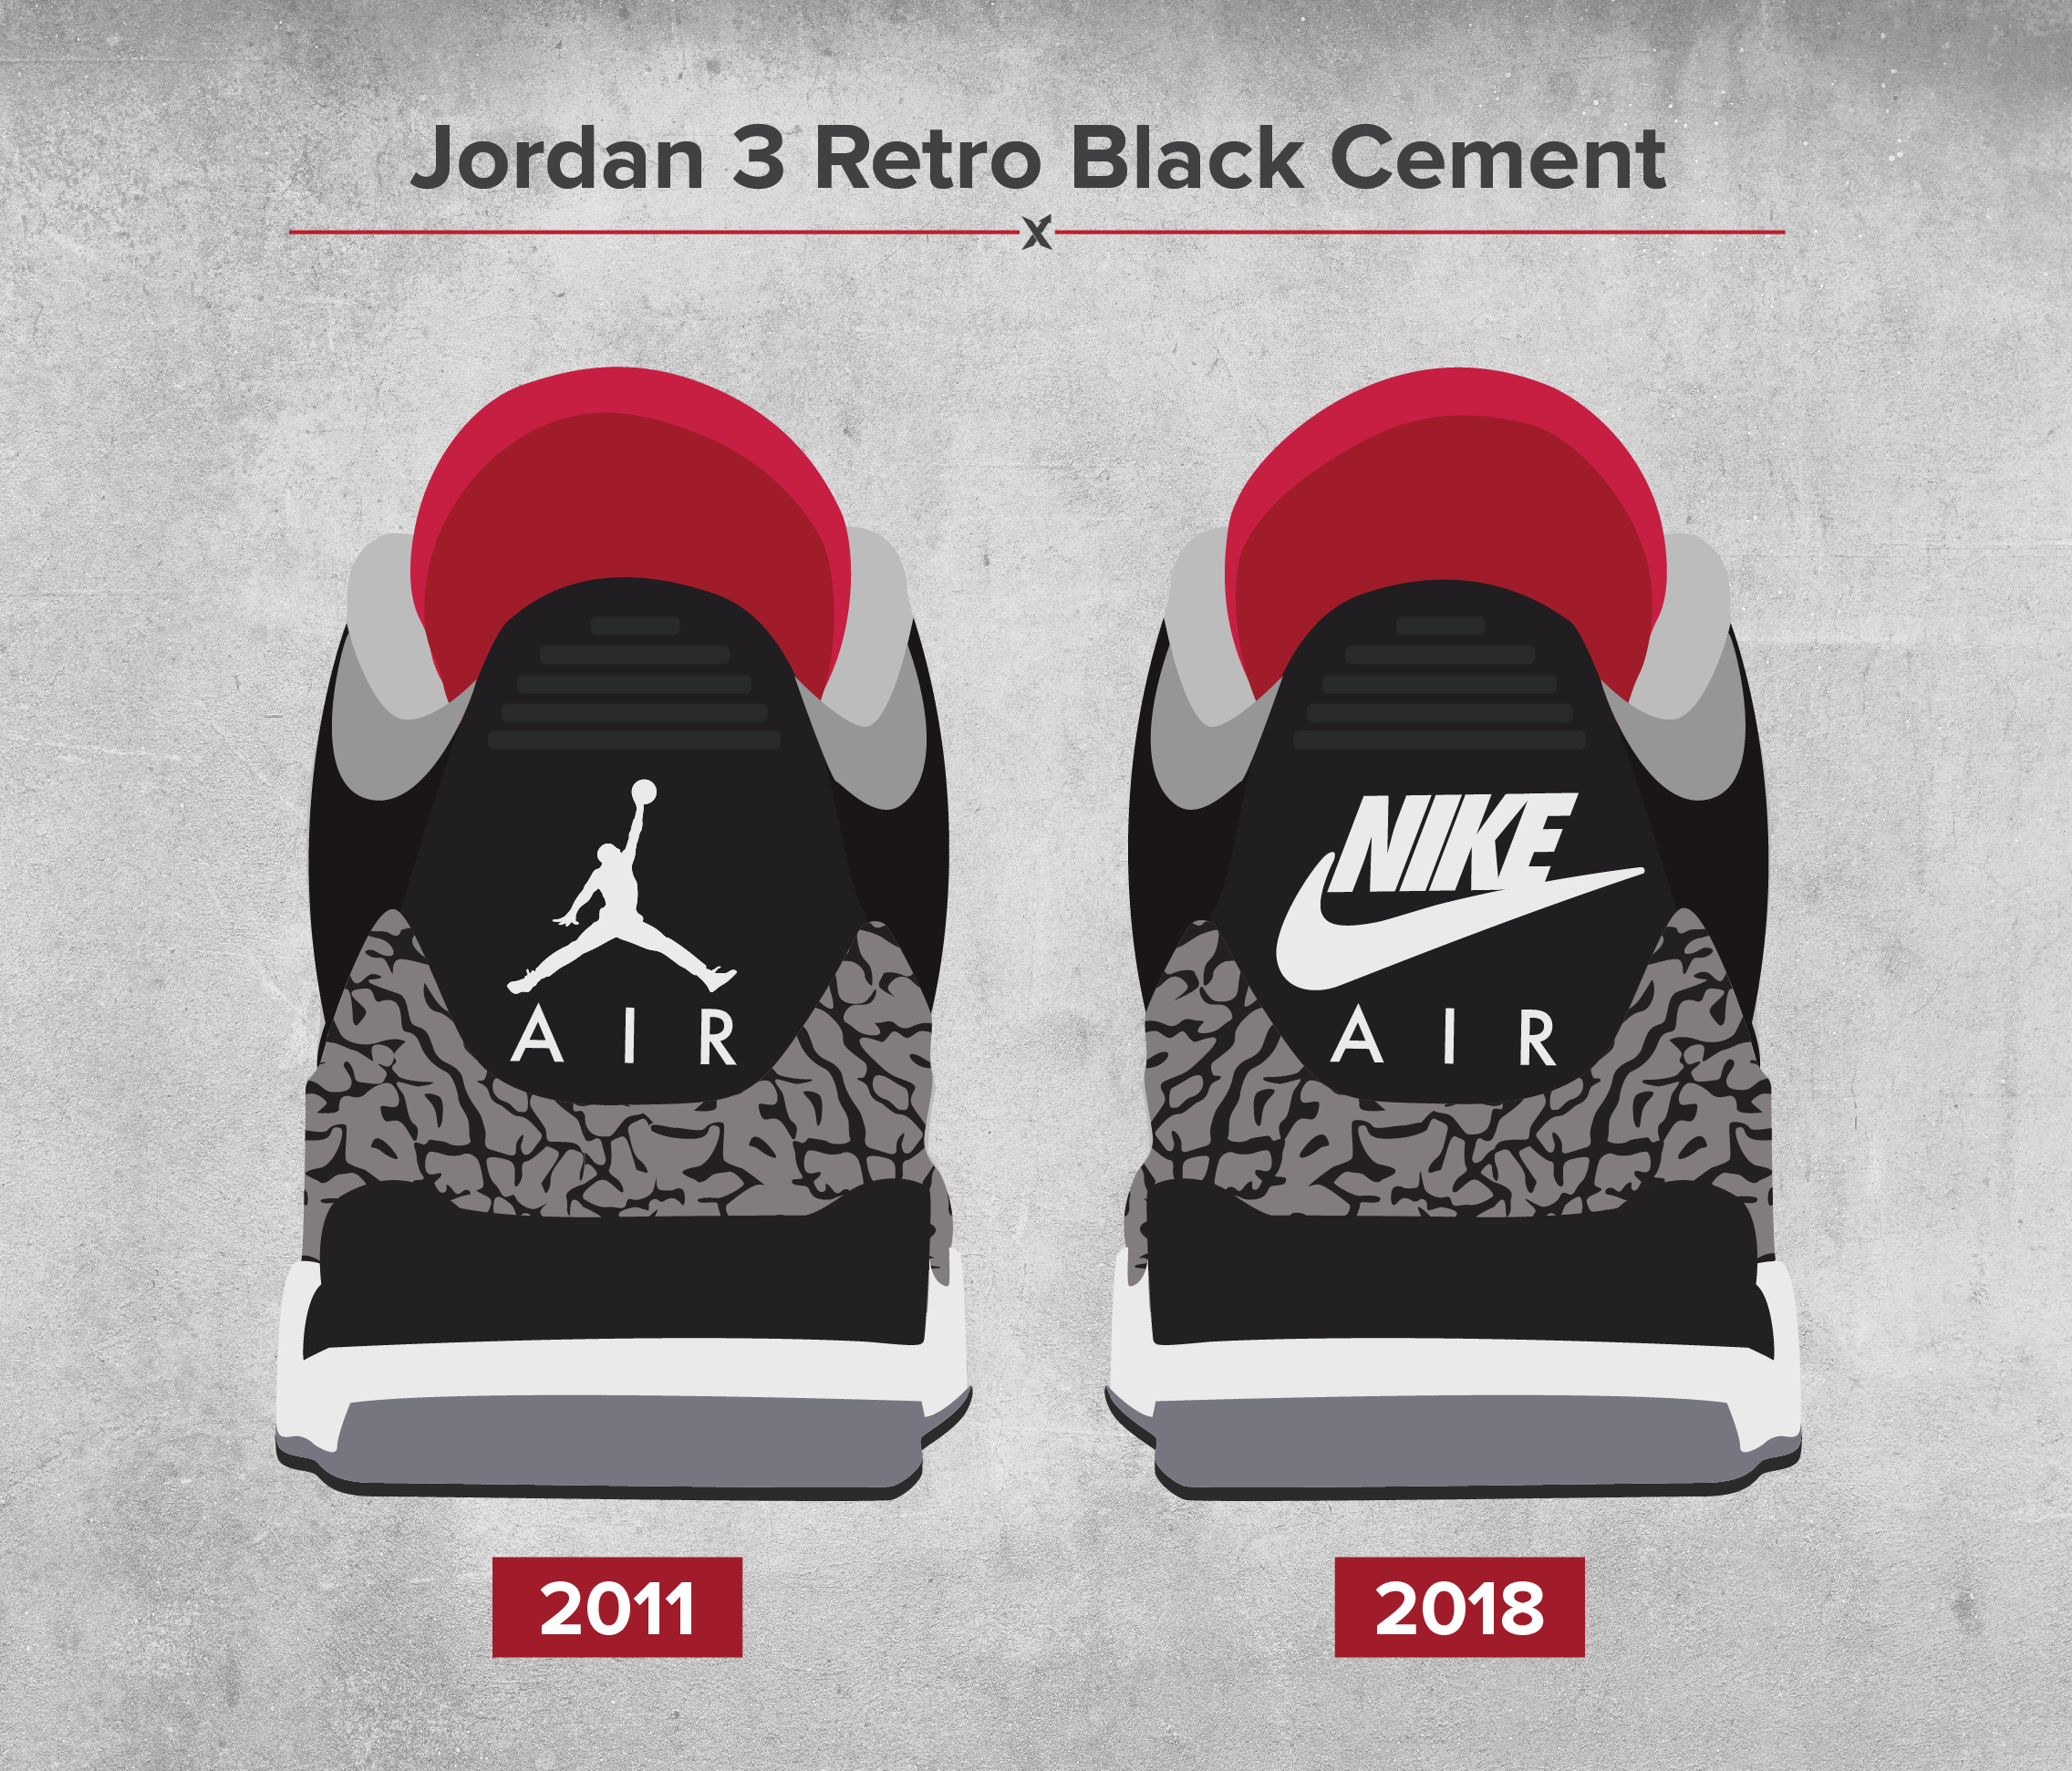 577f5ef1bd4cea The 2018 model mirrors the 1988 original in nearly all other aesthetic  dimensions- from the black cement colorway to the elephant print toe front.